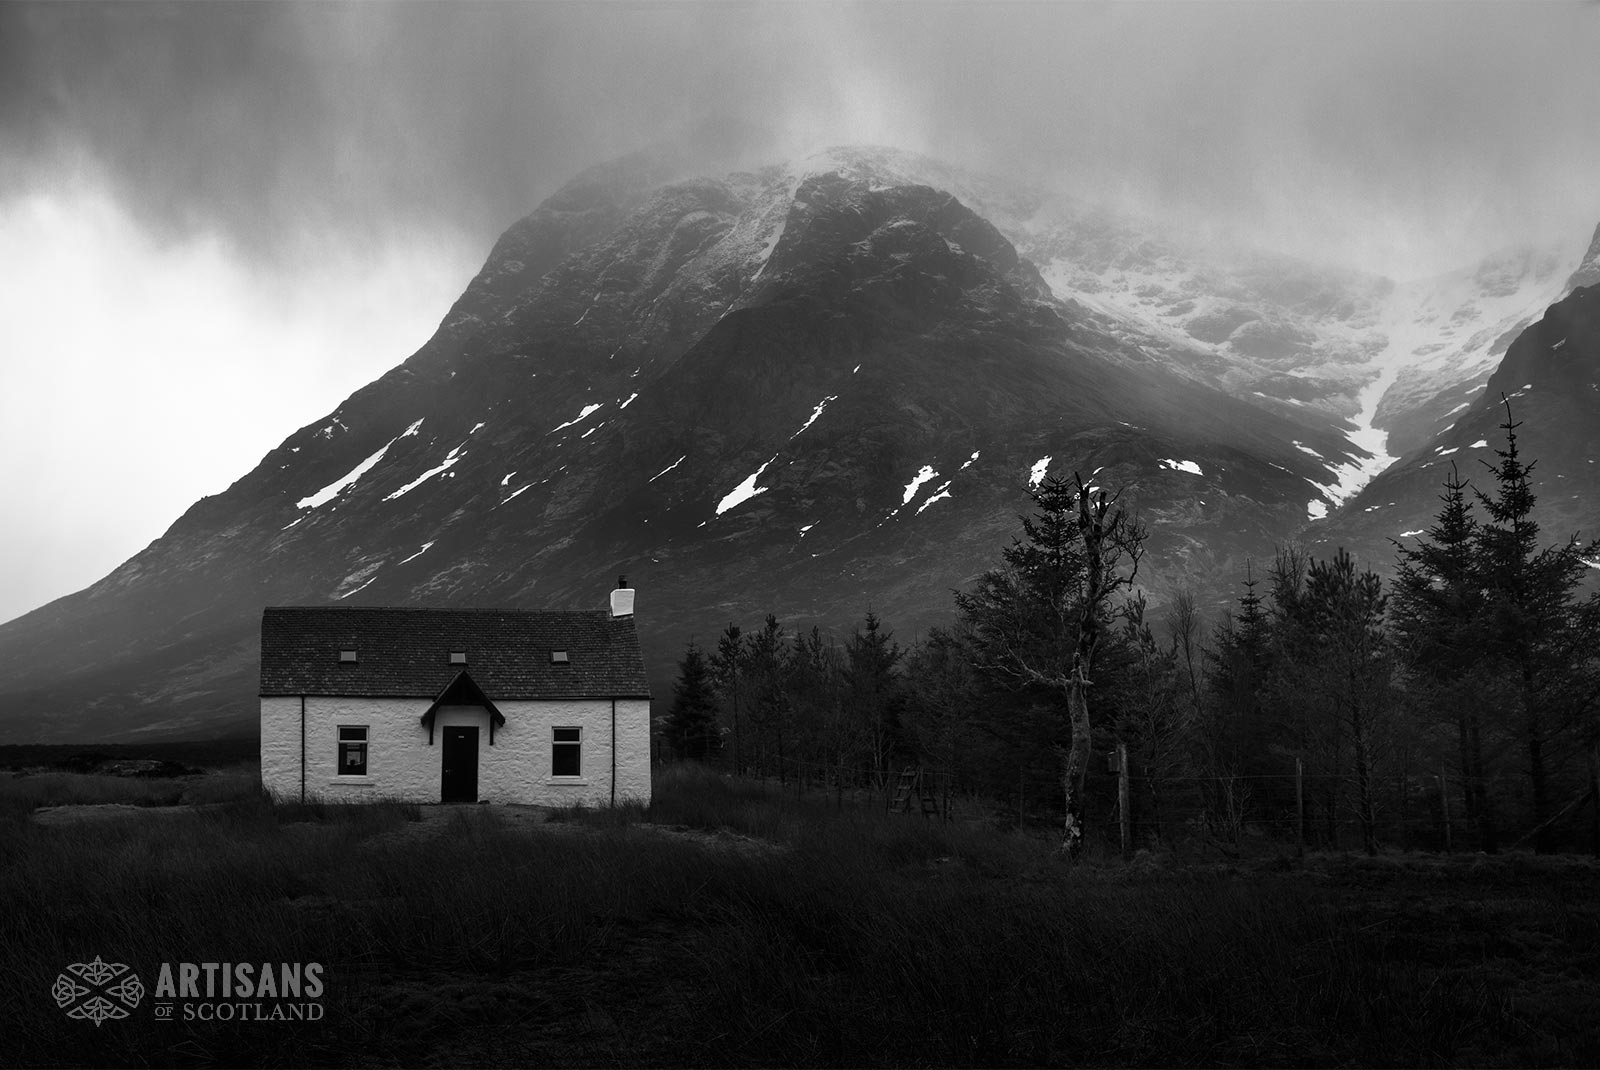 Lagangarbh Hut - Glancoe - The most beautiful places in Scotland